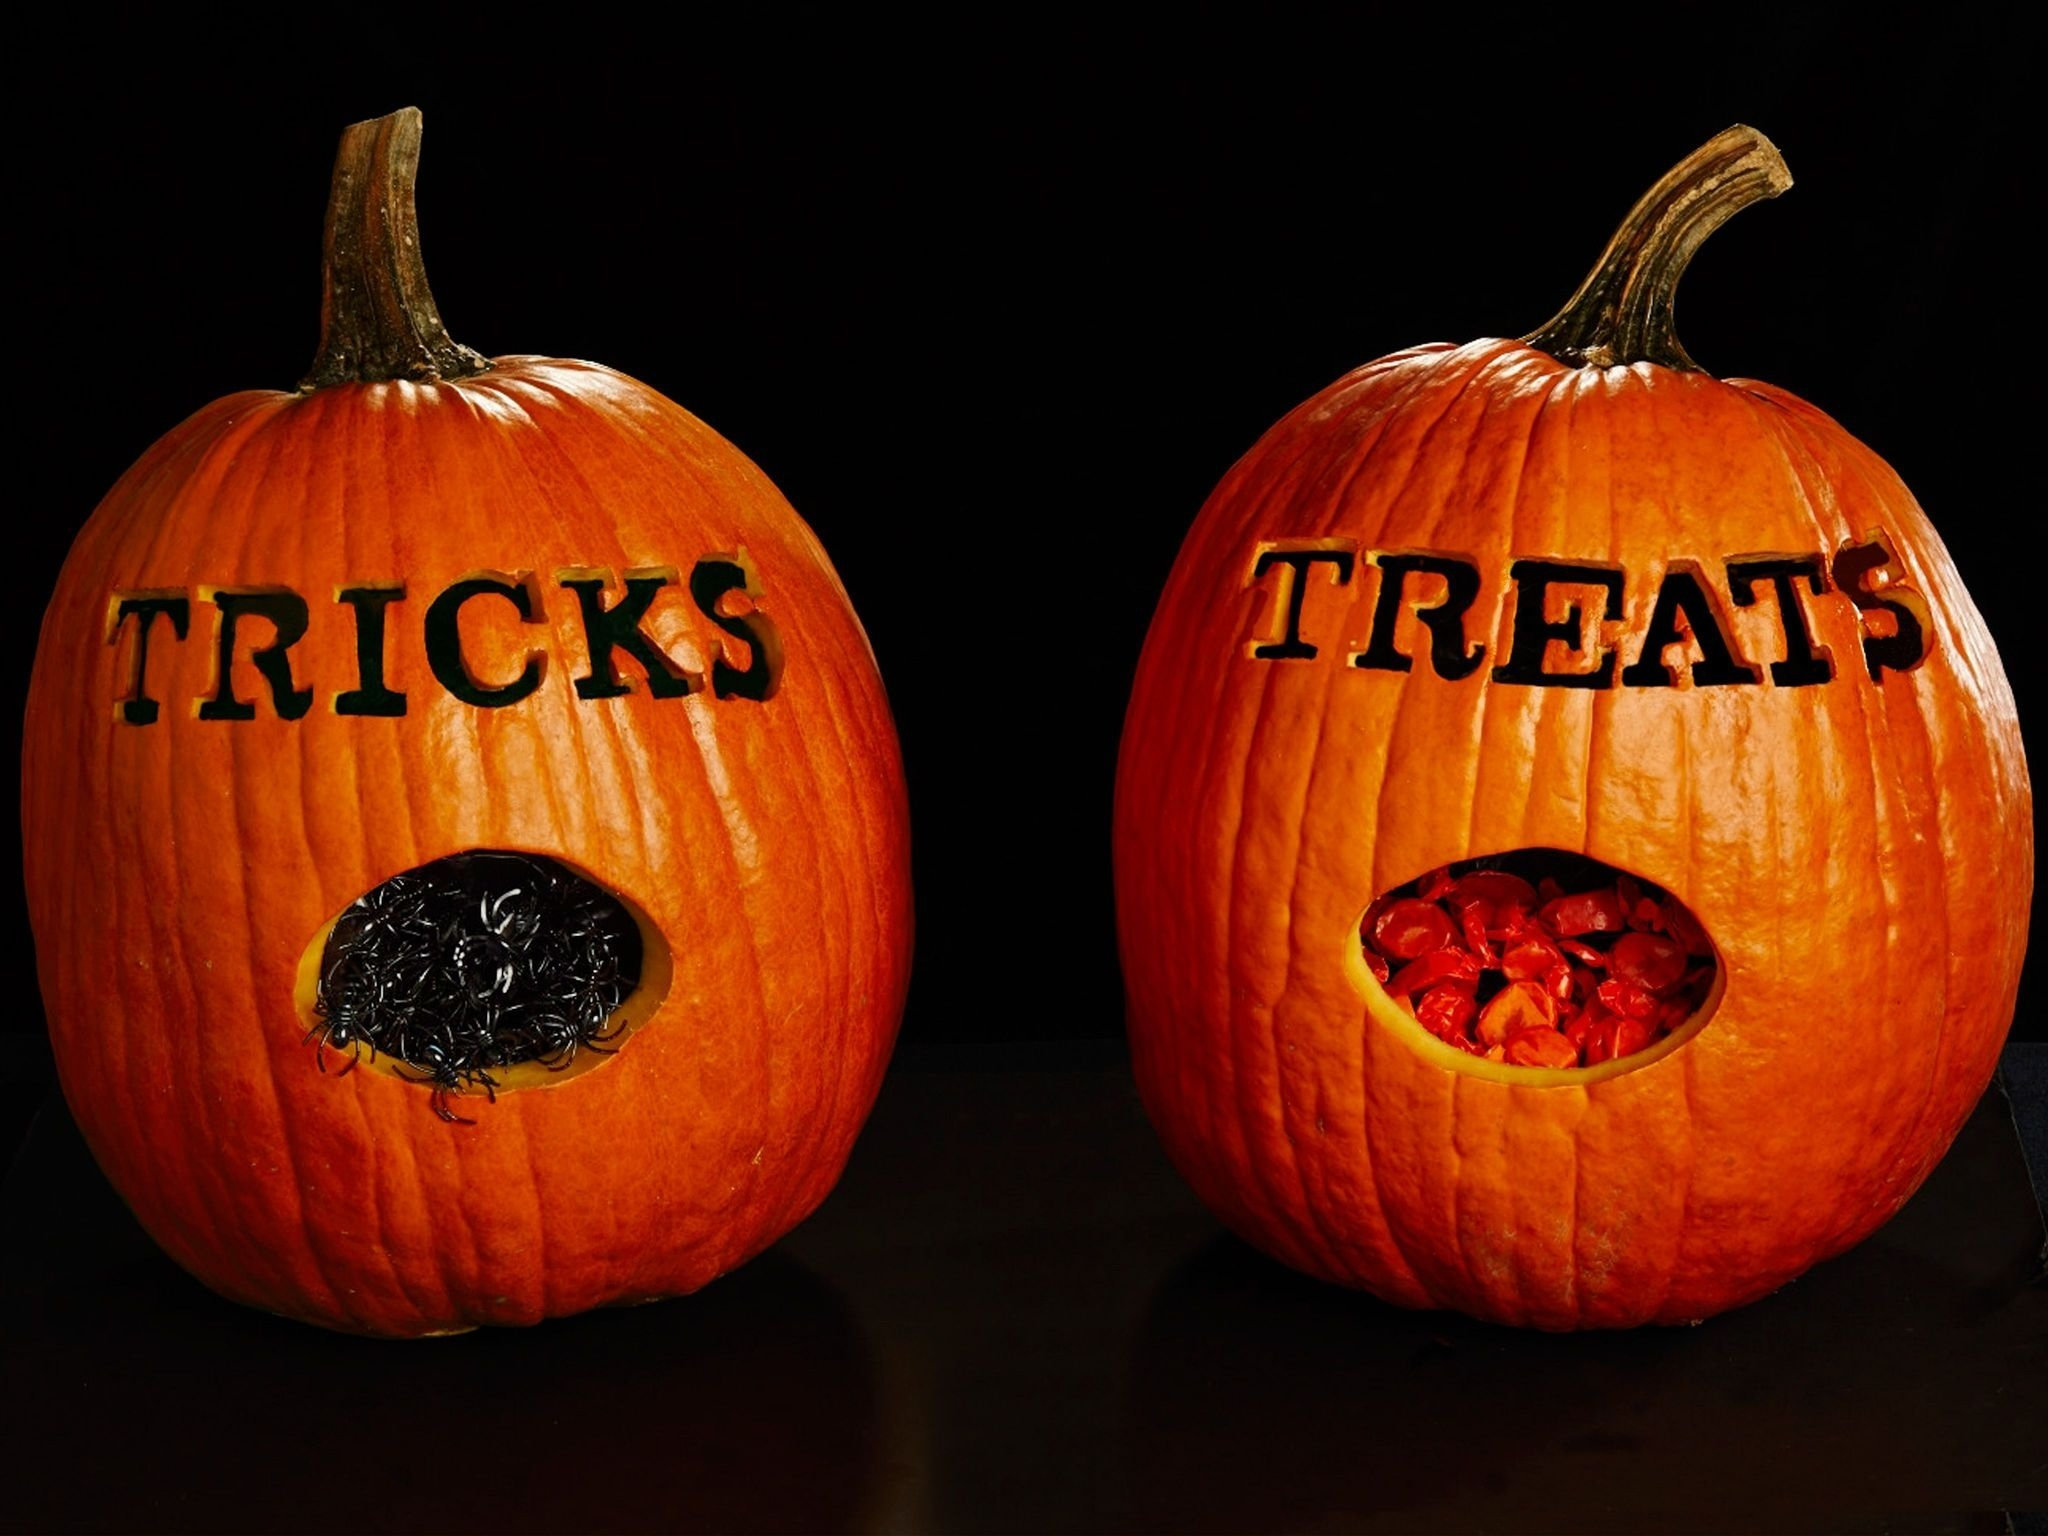 10 Wonderful Cool Ideas For Pumpkin Carving the best simple easy pumpkin carving ideas on cool for halloween 5 2020